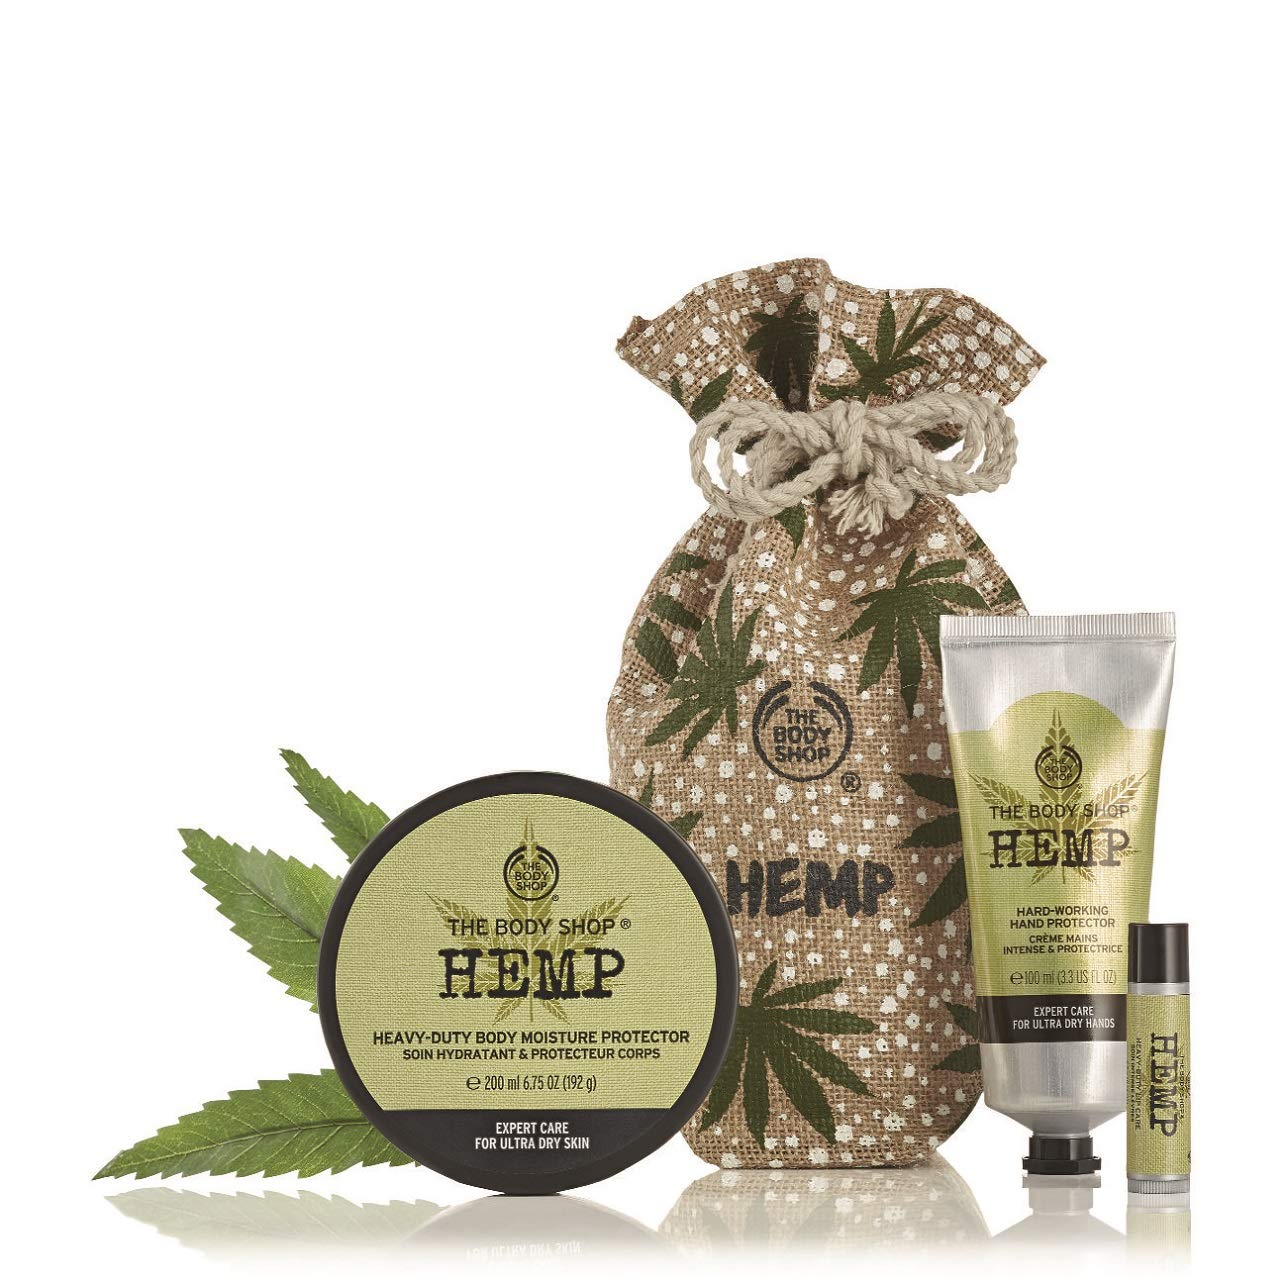 The Body Shop Hemp Expert Moisture Supplies Gift Set by The Body Shop